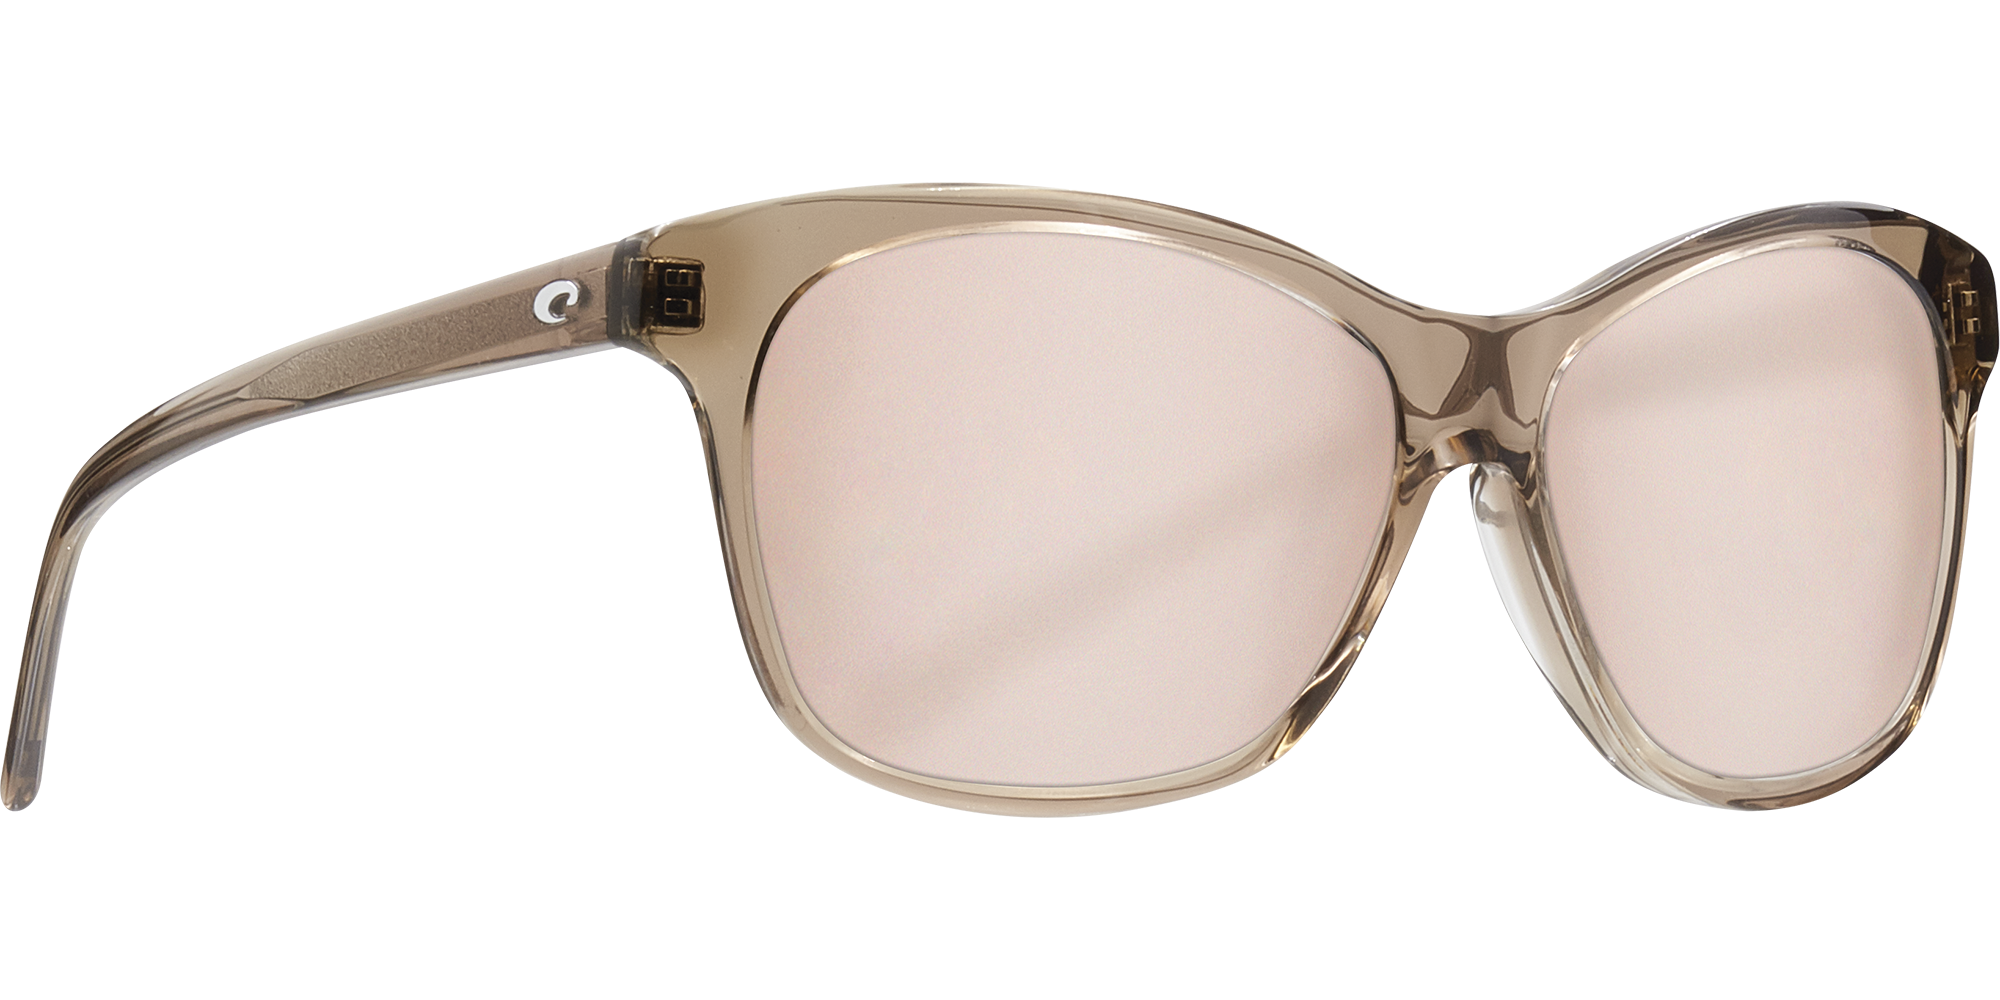 Del Mar Collection - Sarasota Polarized Sunglasses - Shiny Taupe Crystal - Polarized 580 Copper Silver Mirror Lenses